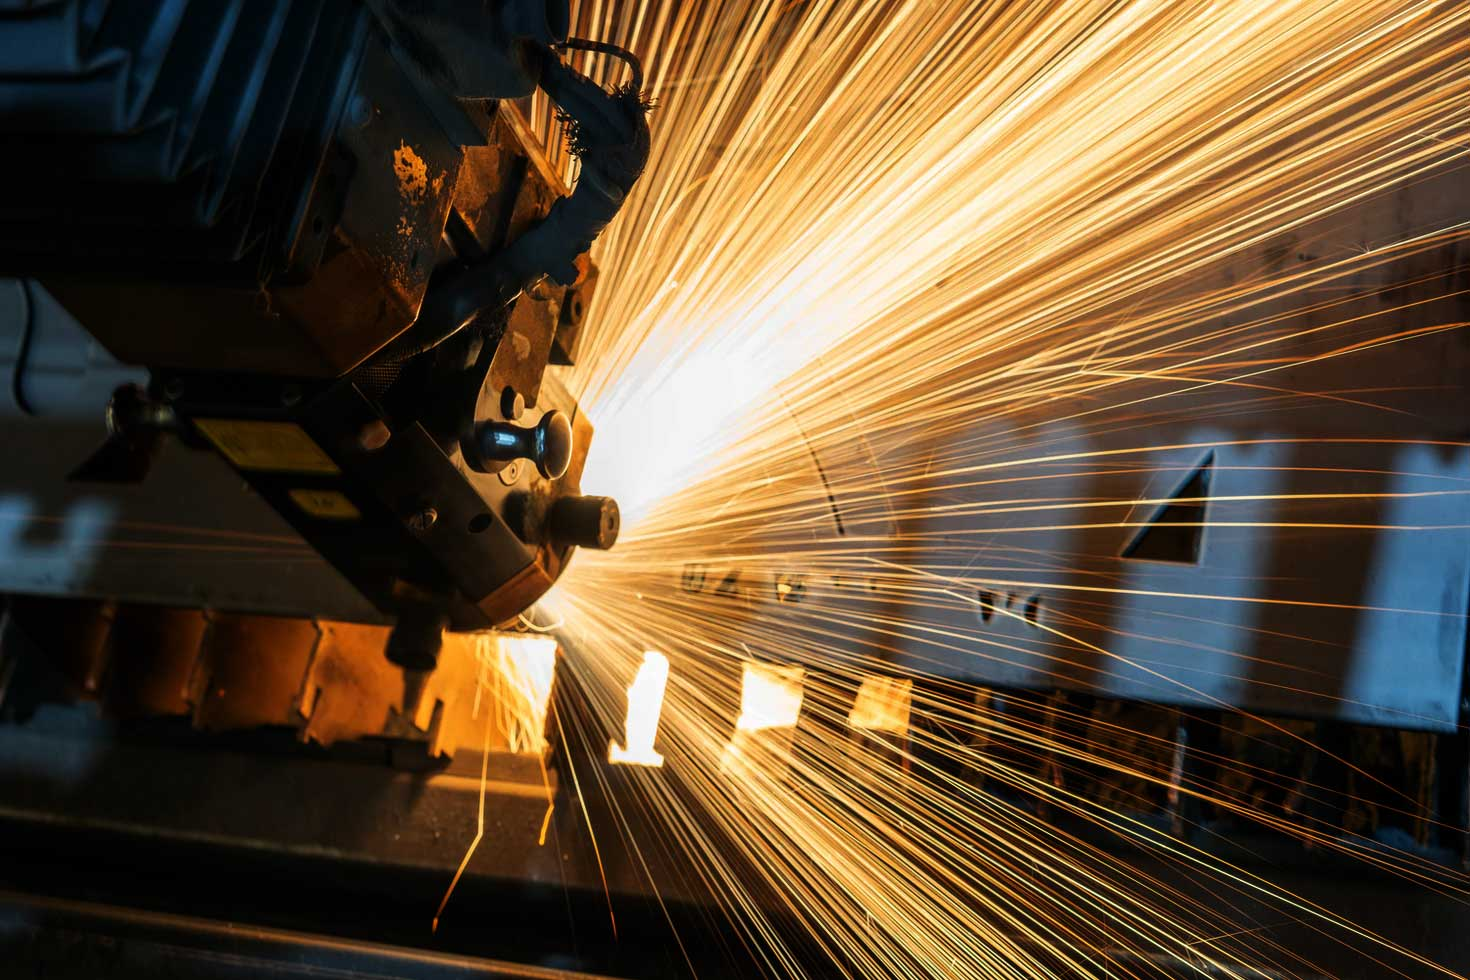 supply chain disruption reshore manufacturing operations